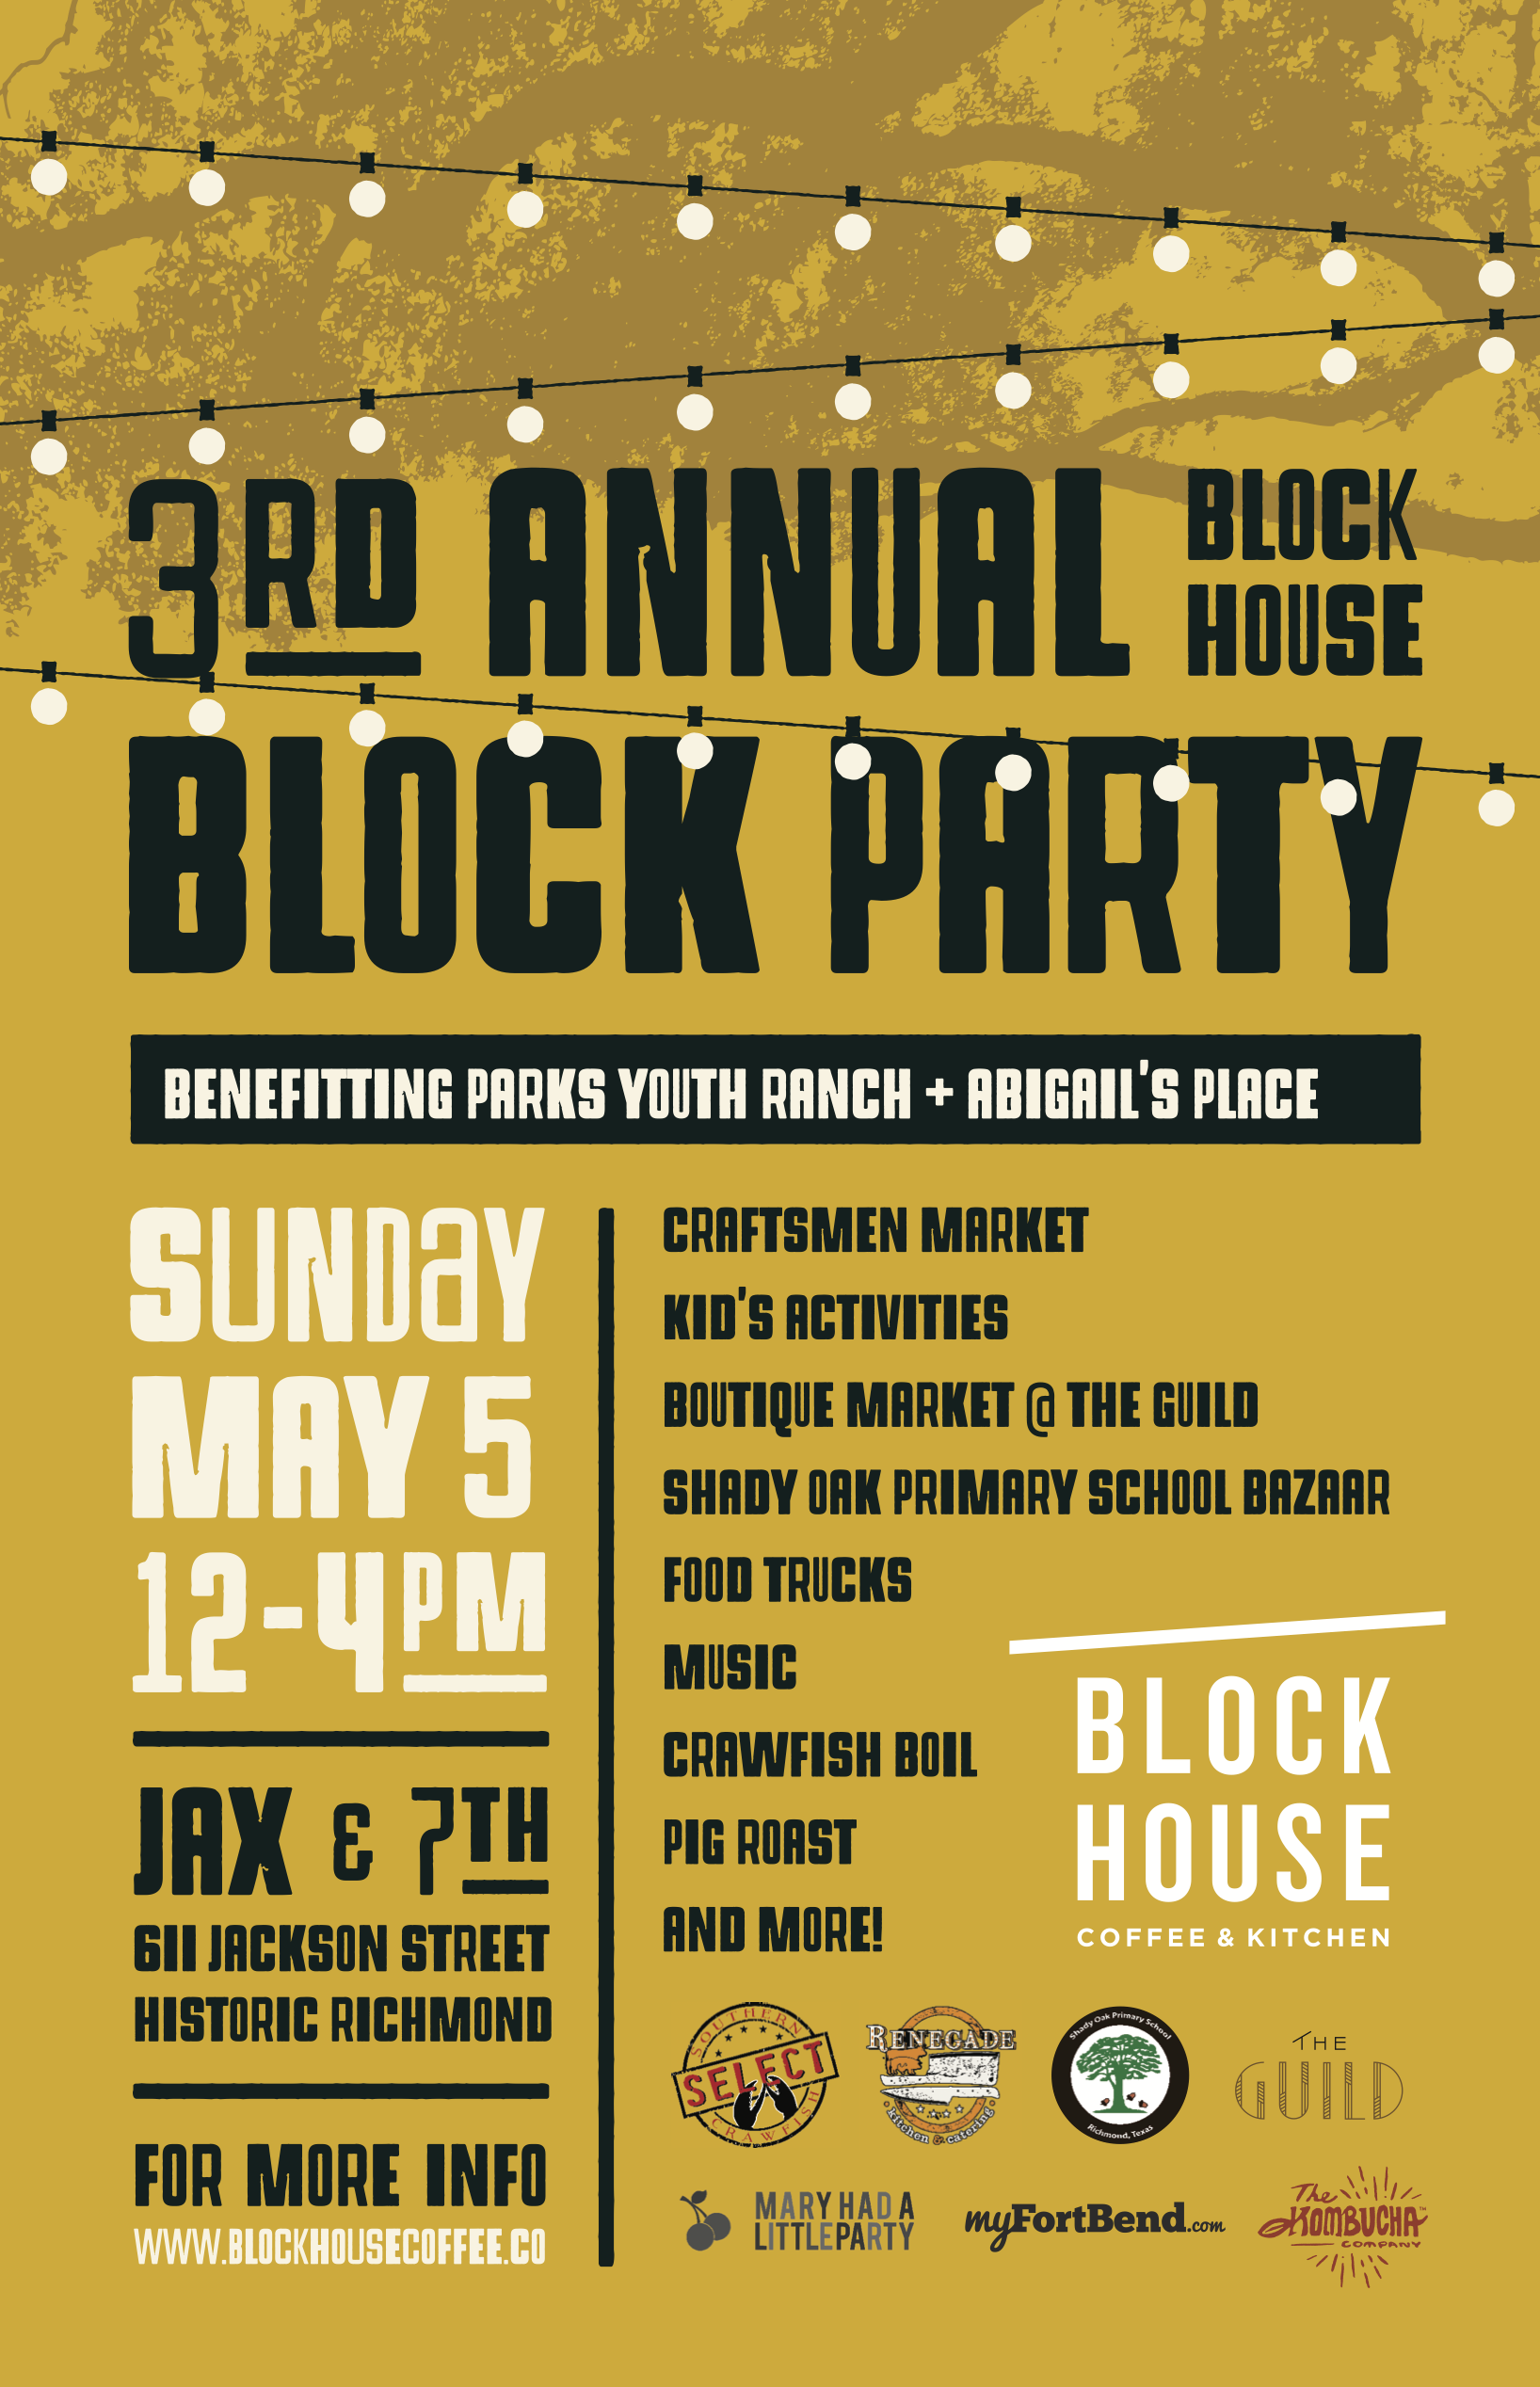 blockhouse 3rd annnual block party.png